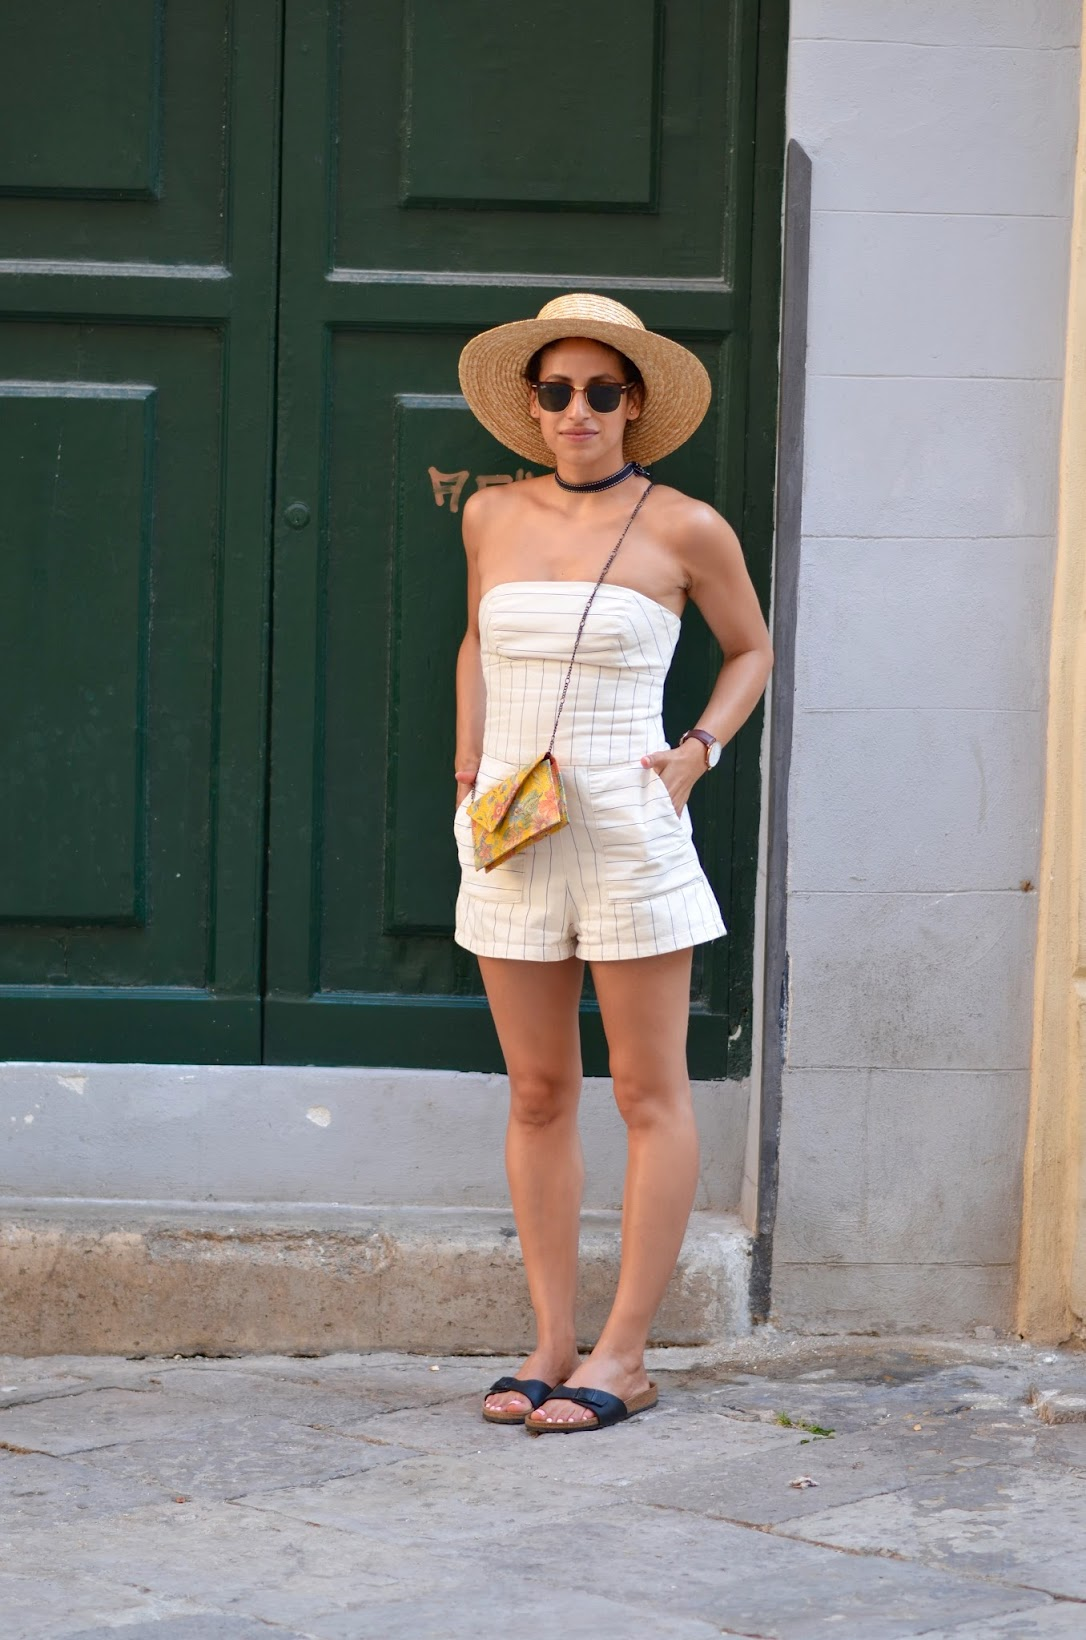 streetstyle in Palermo, italy, Zara japanese denim, playsuit, striped playsuit, straw fedora, summer style, what to wear in Italy